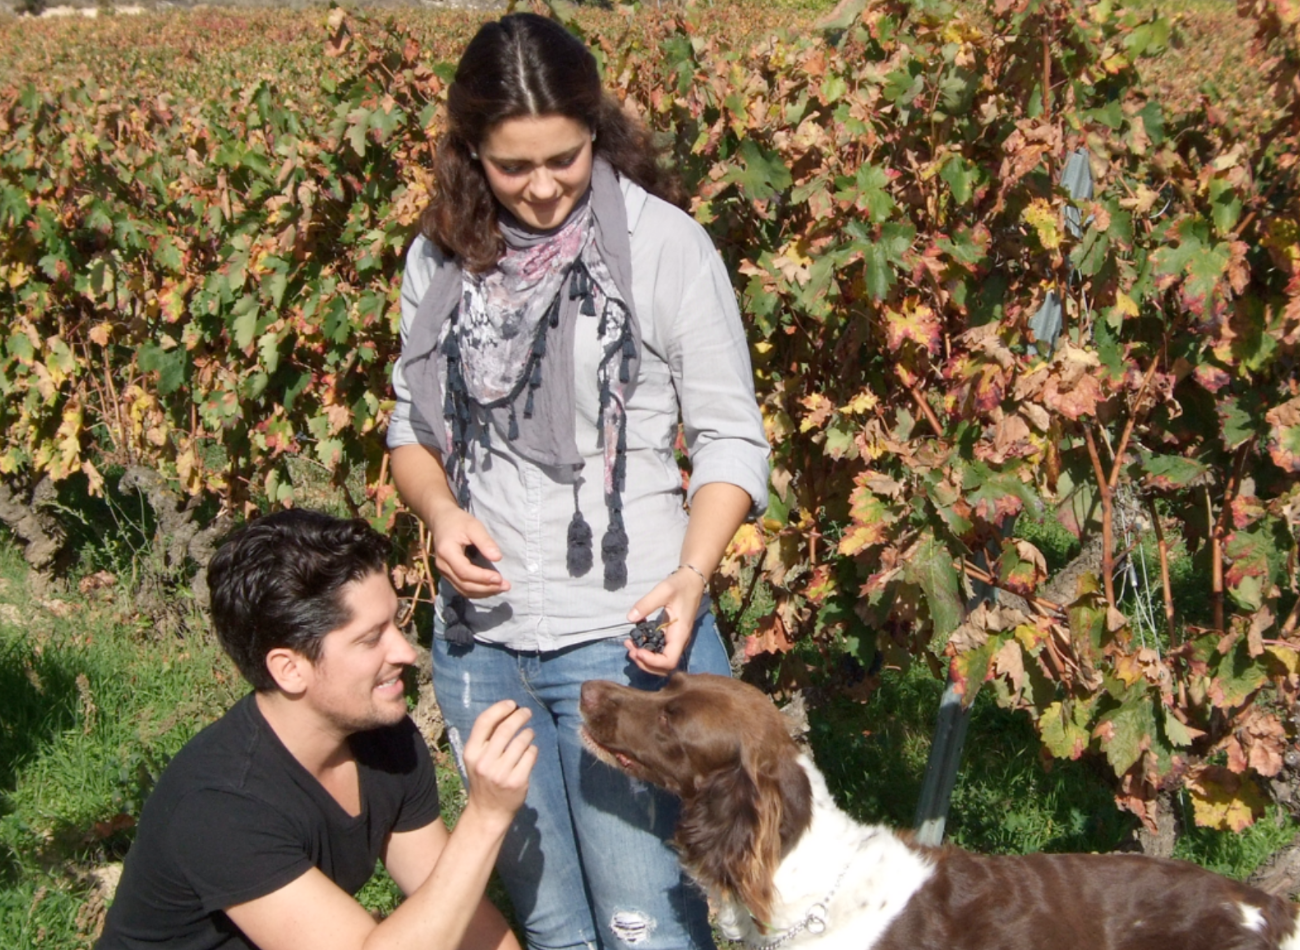 Sepp and Maria Muster in a biodiverse vineyard full of flowers and life